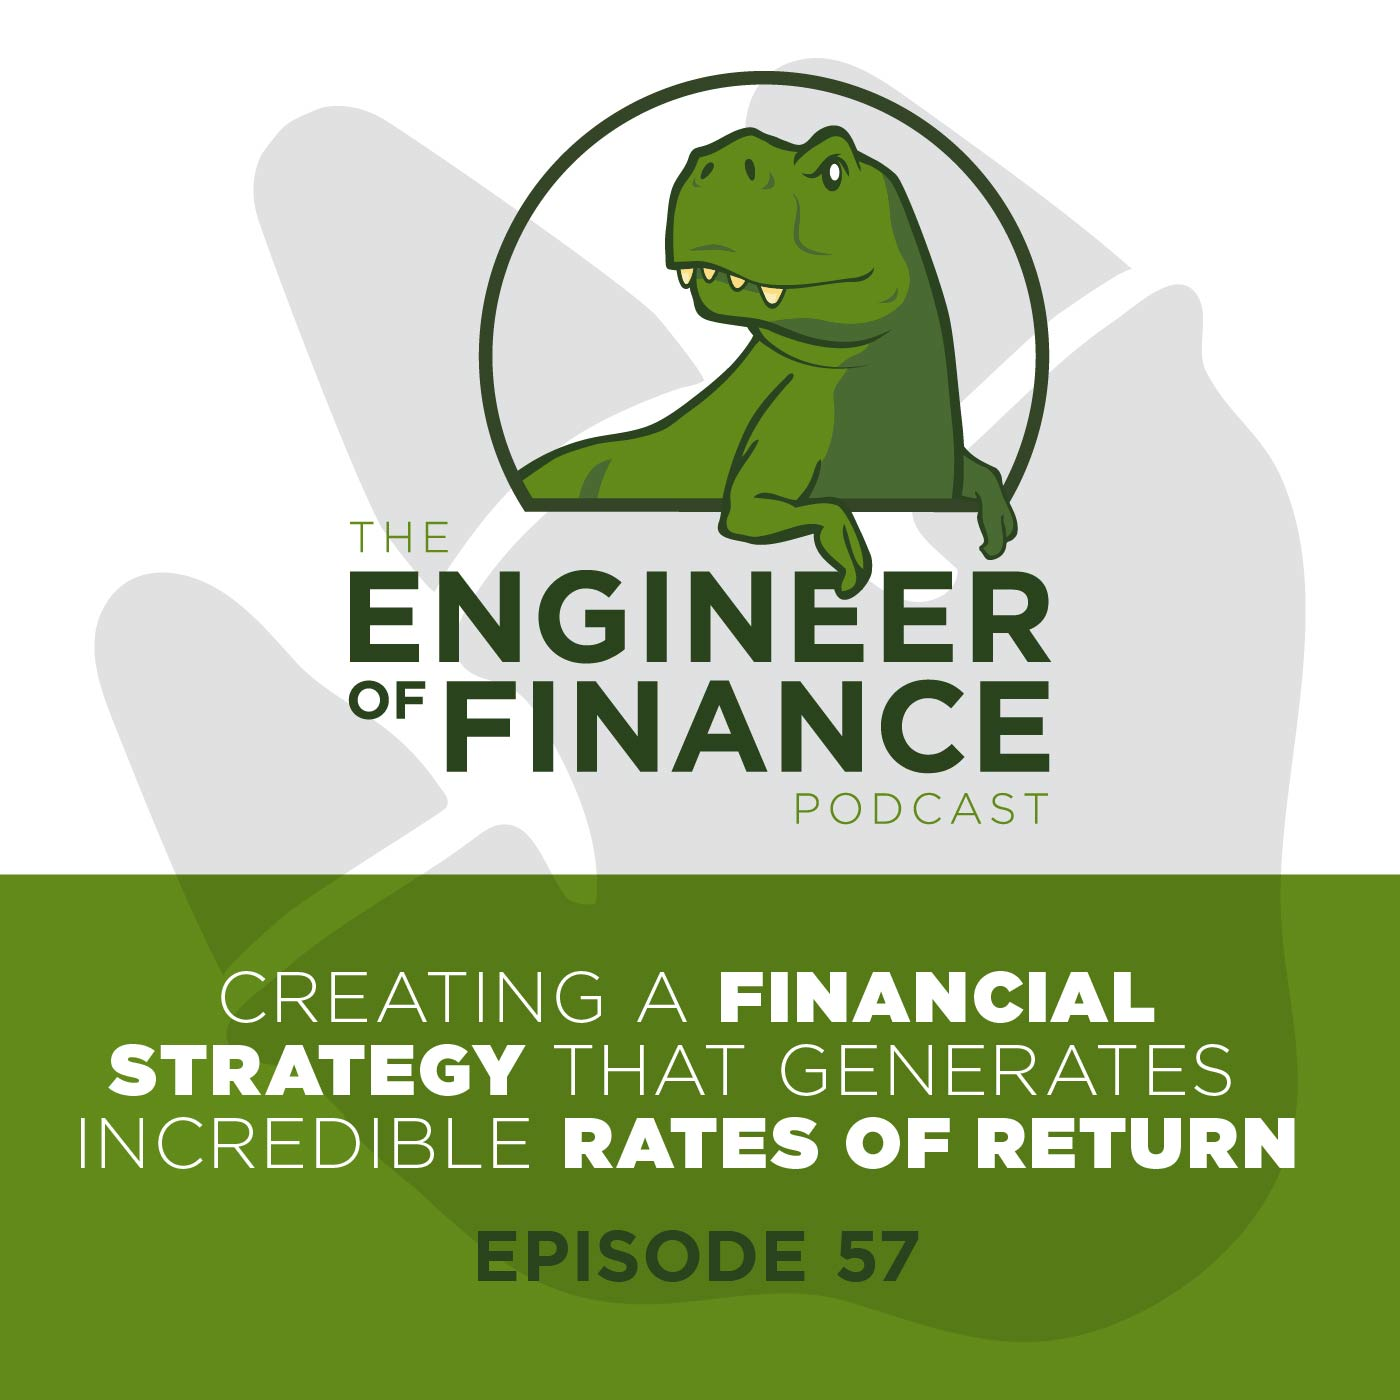 Creating A Financial Strategy That Generates Incredible Rates Of Return – Episode 57